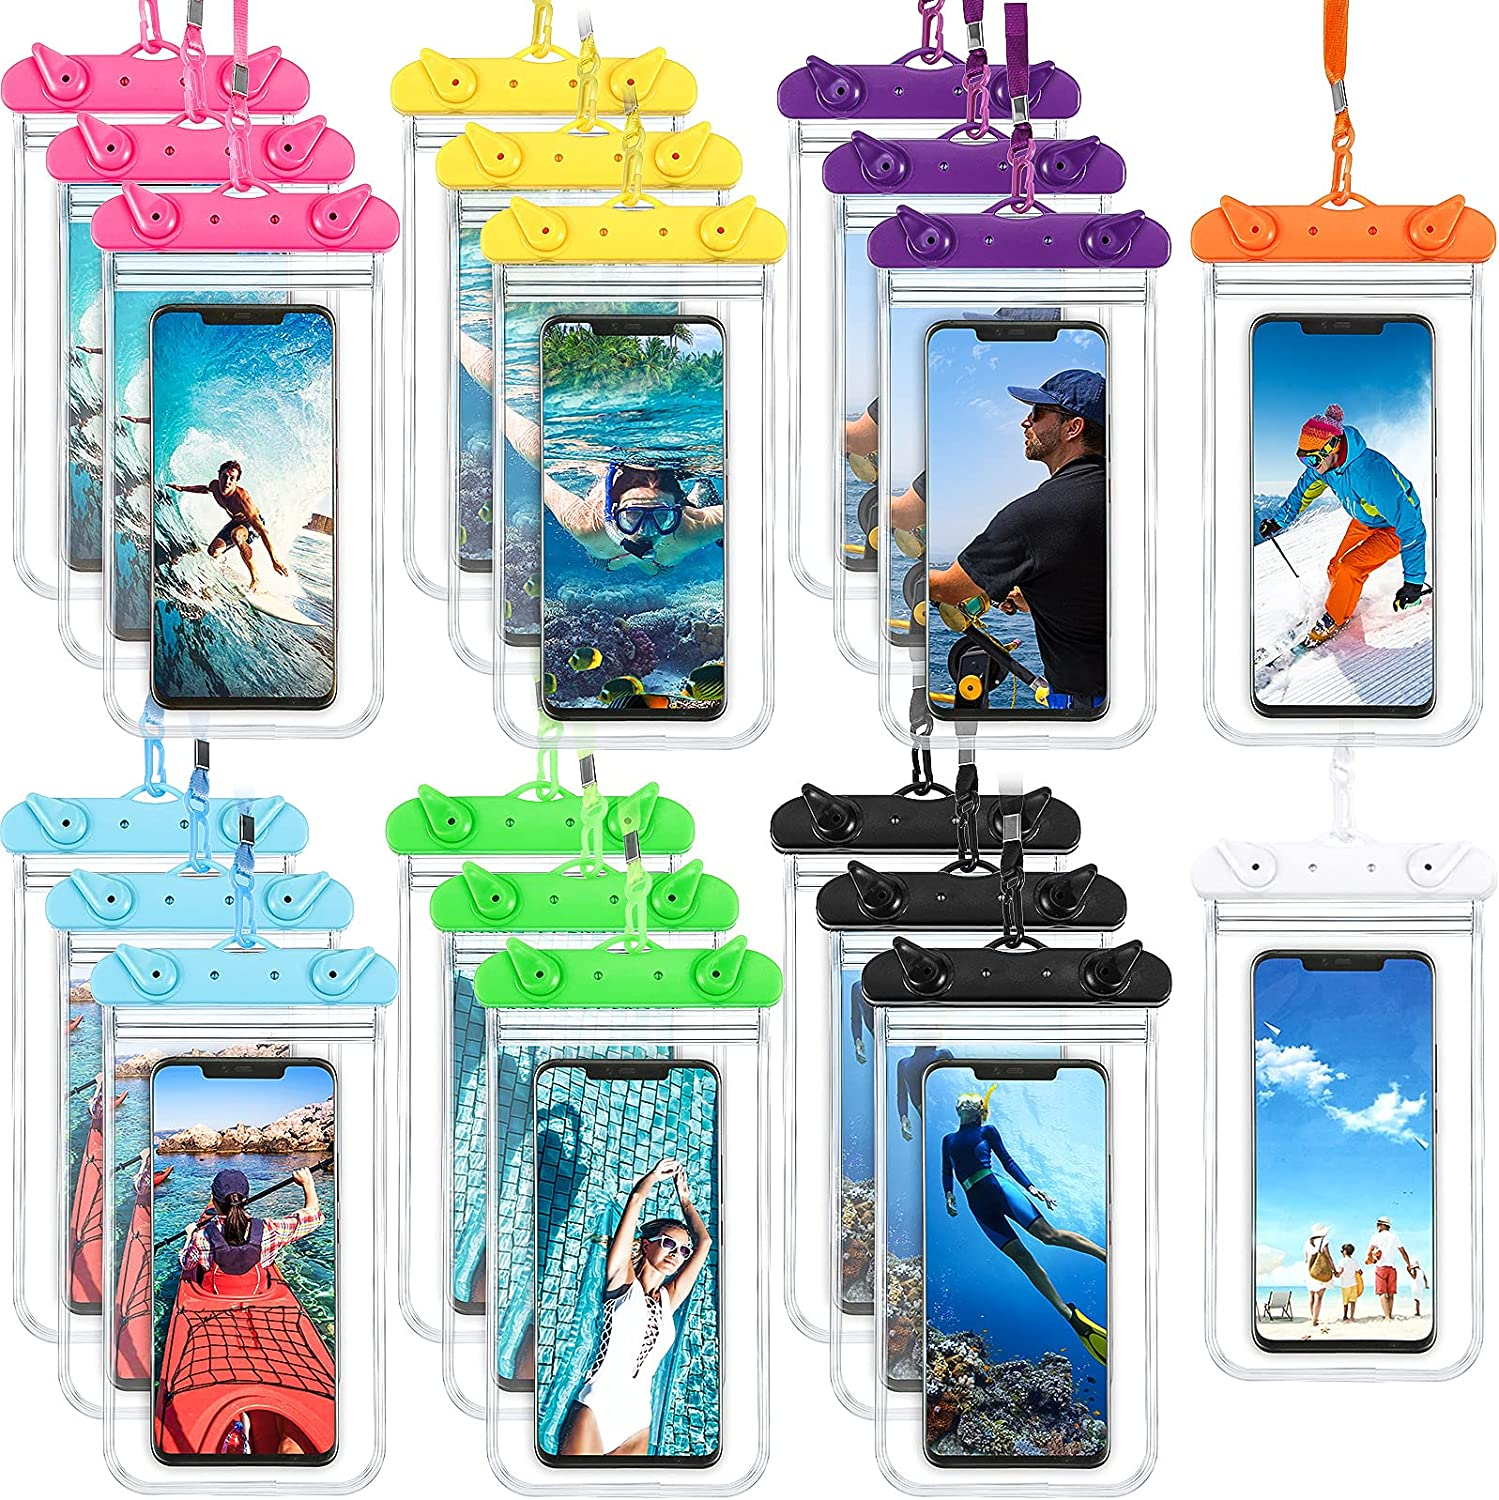 20 Pieces Waterproof Phone Pouch Bag PVC Waterproof Phone Bag with Lanyard Swimming Snorkeling Water Universal Phone Case for Smartphone 6.9 Inch